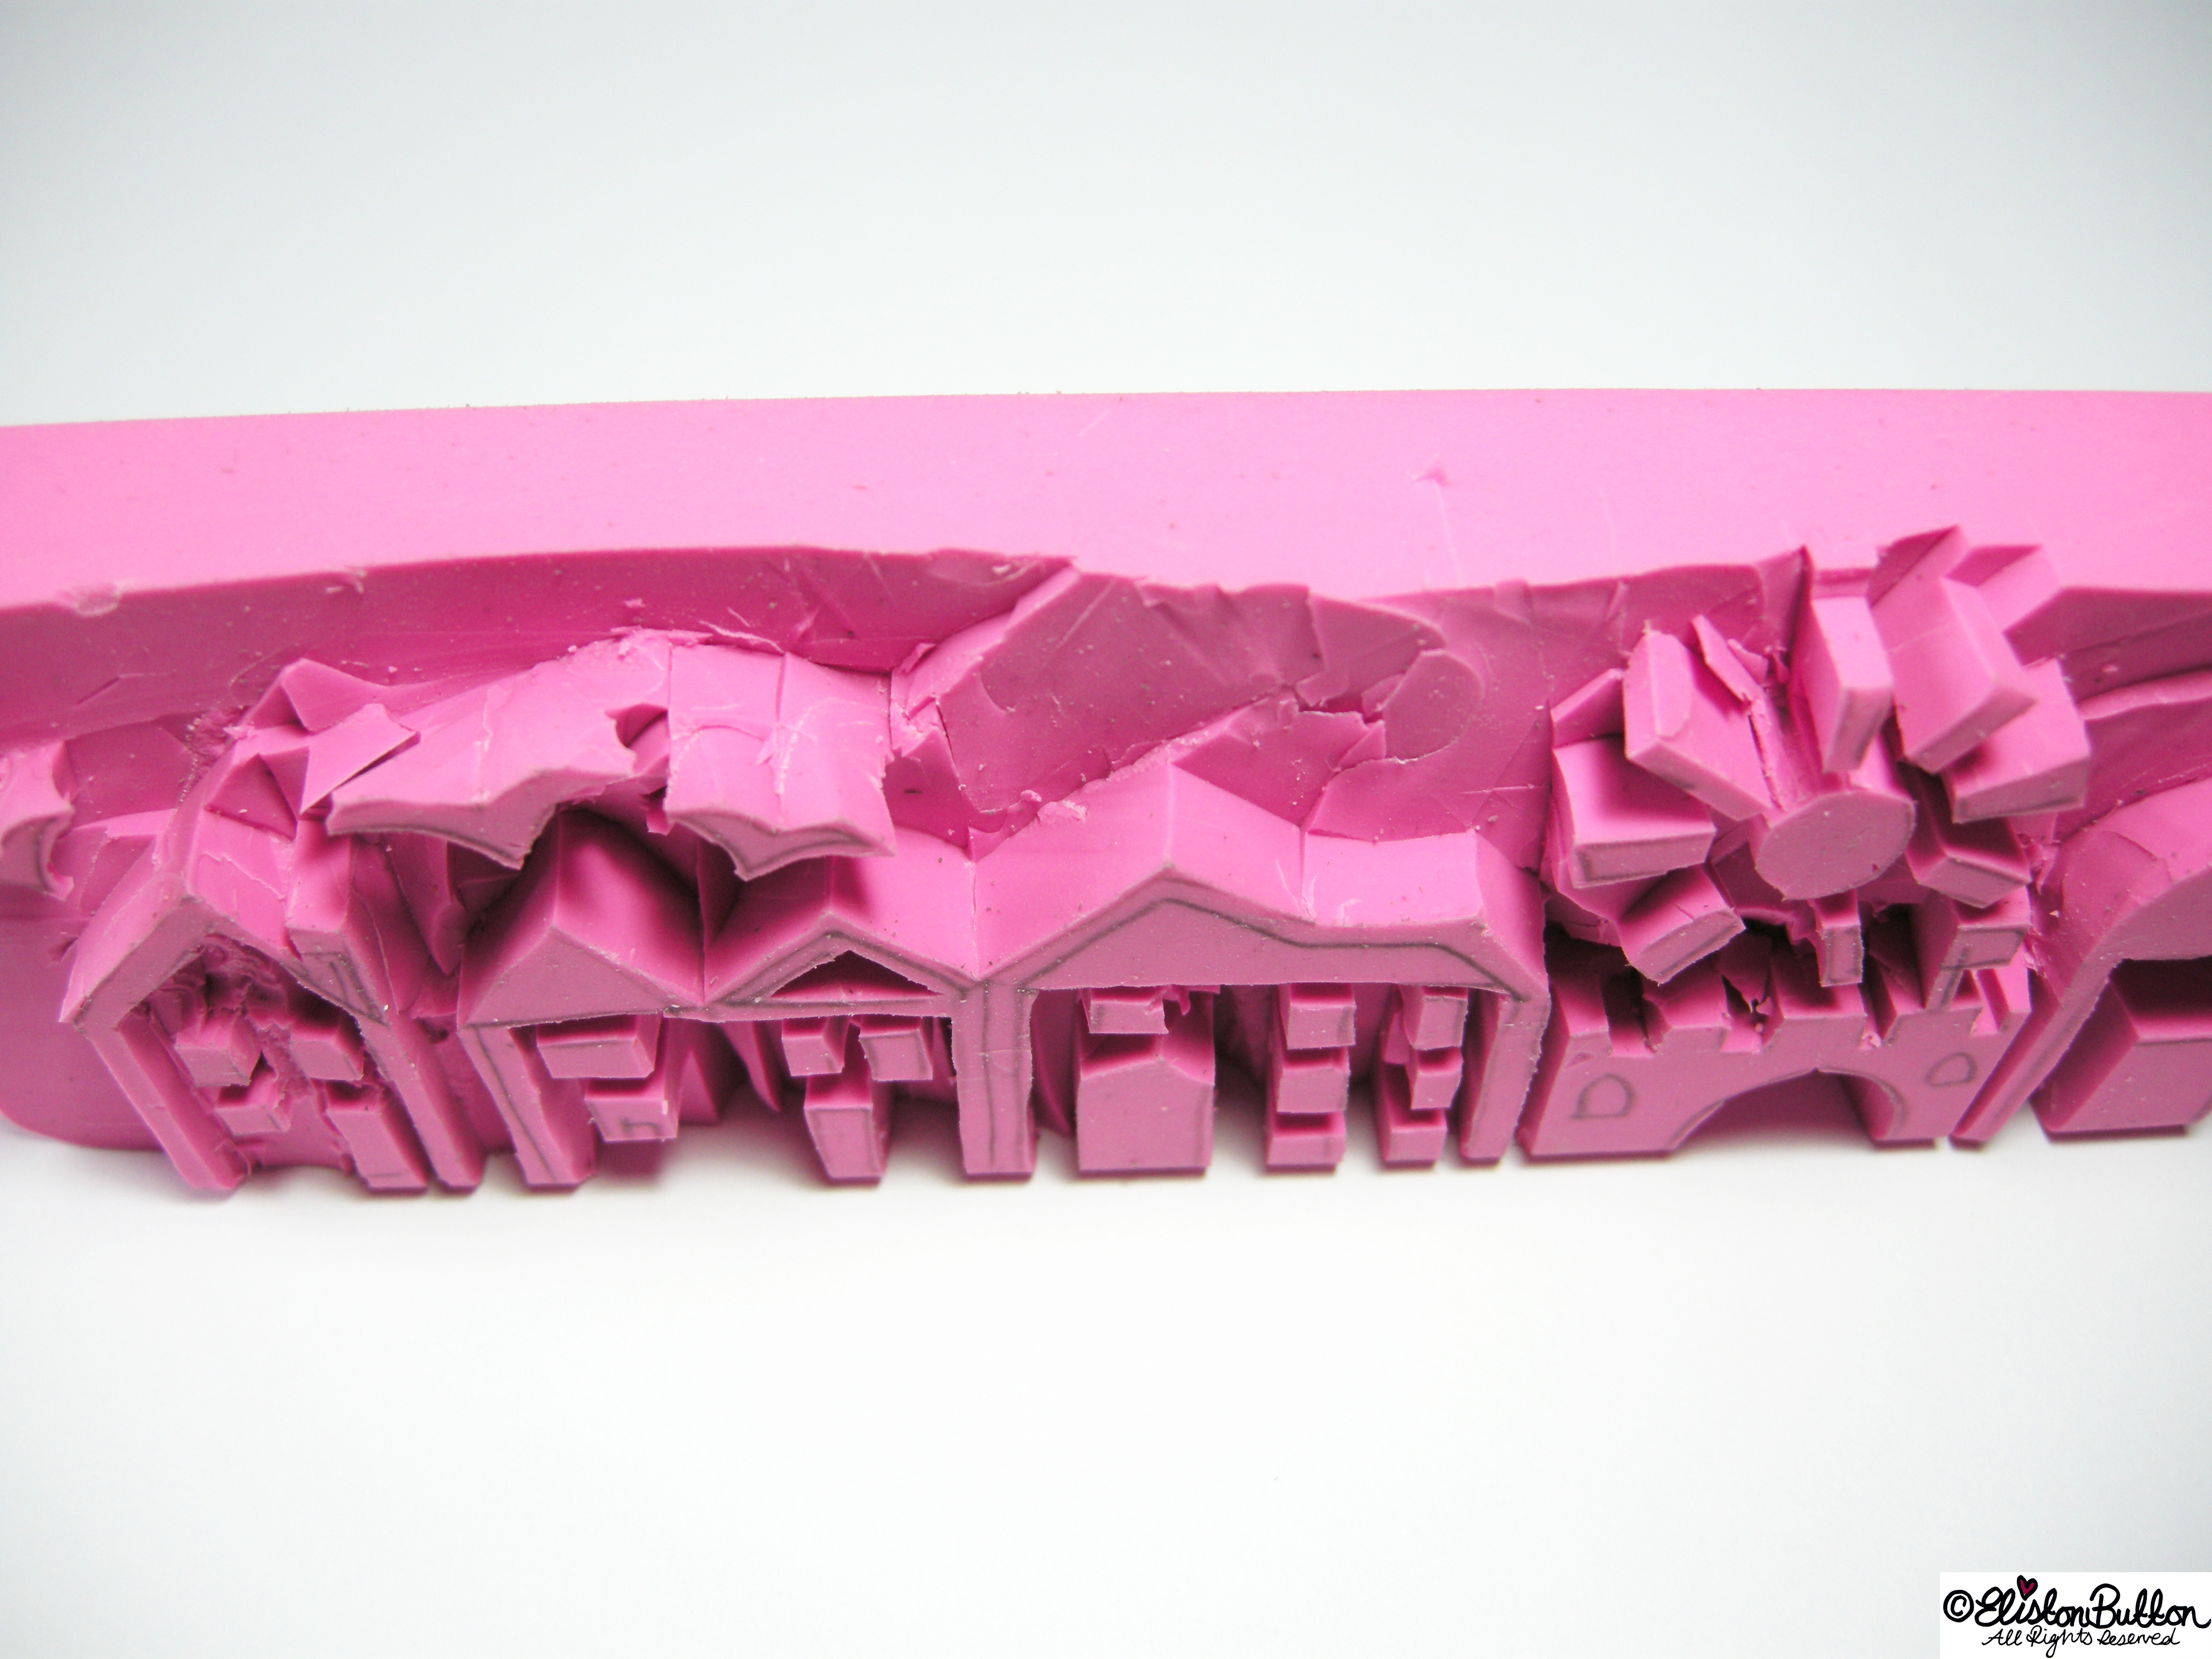 Hand-Carved Sreetscape Rubber Stamp - Angle View - Hand-Carved Streetscape Stamps at www.elistonbutton.com - Eliston Button - That Crafty Kid – Art, Design, Craft & Adventure.